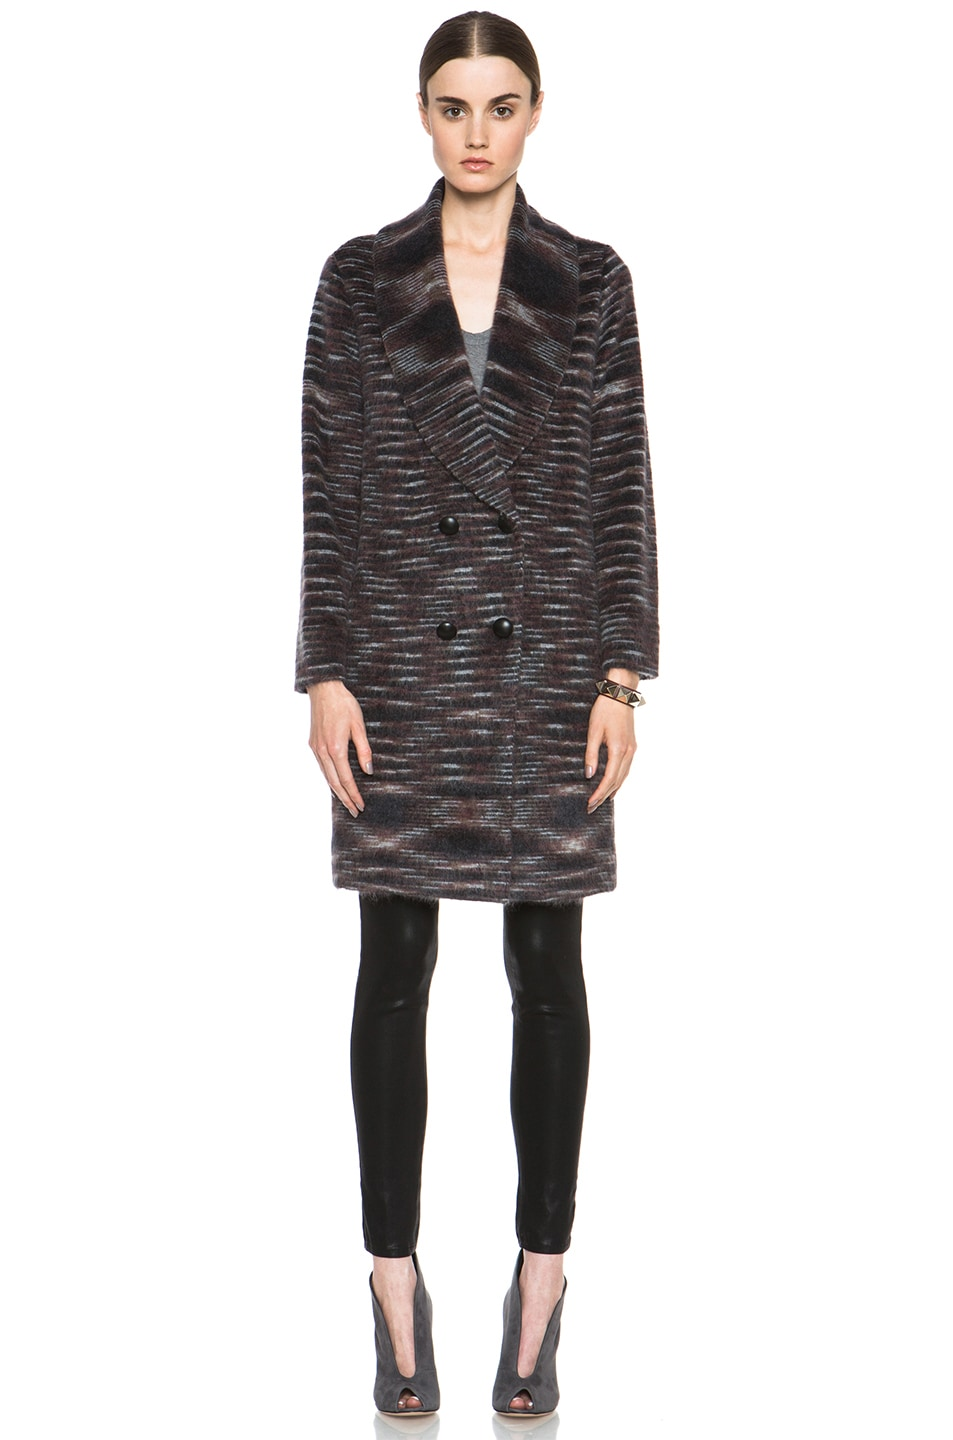 Image 2 of Missoni Striped Fuzzy Cardigan Coat in Black & Brown